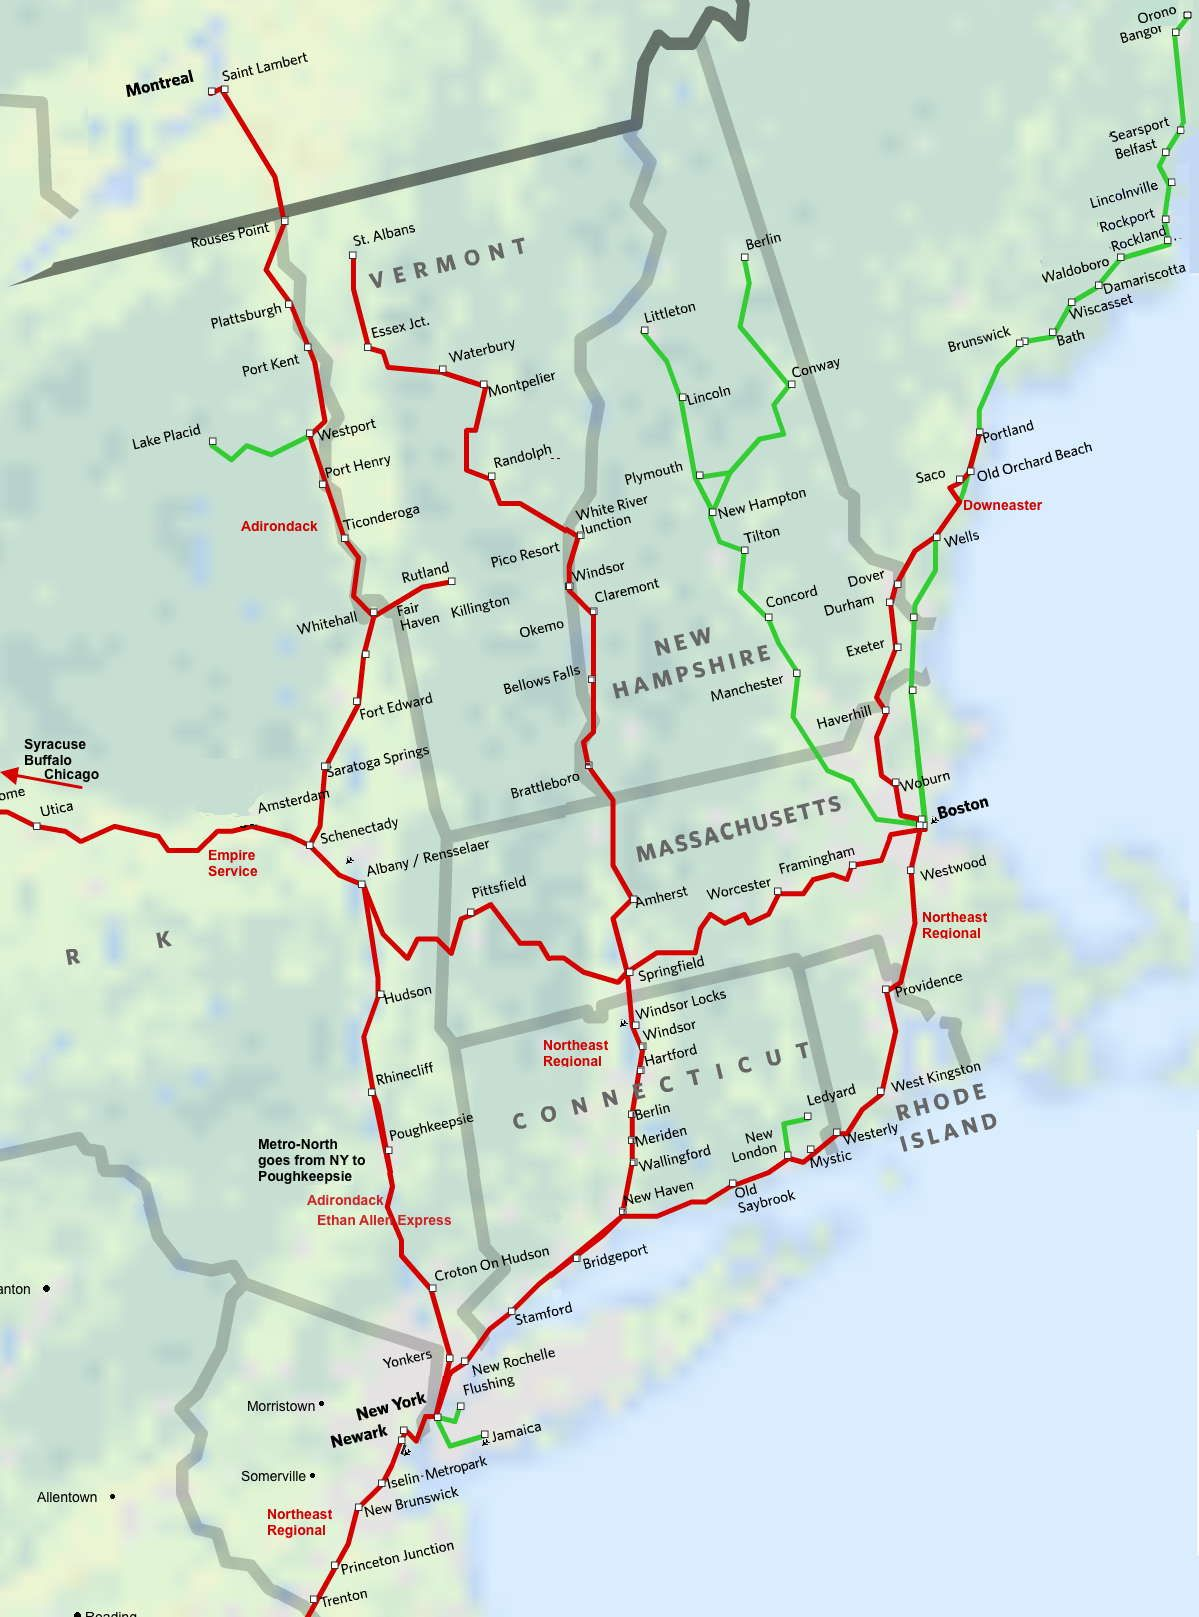 North East New England Amtrak Route Map Super easy way to get to